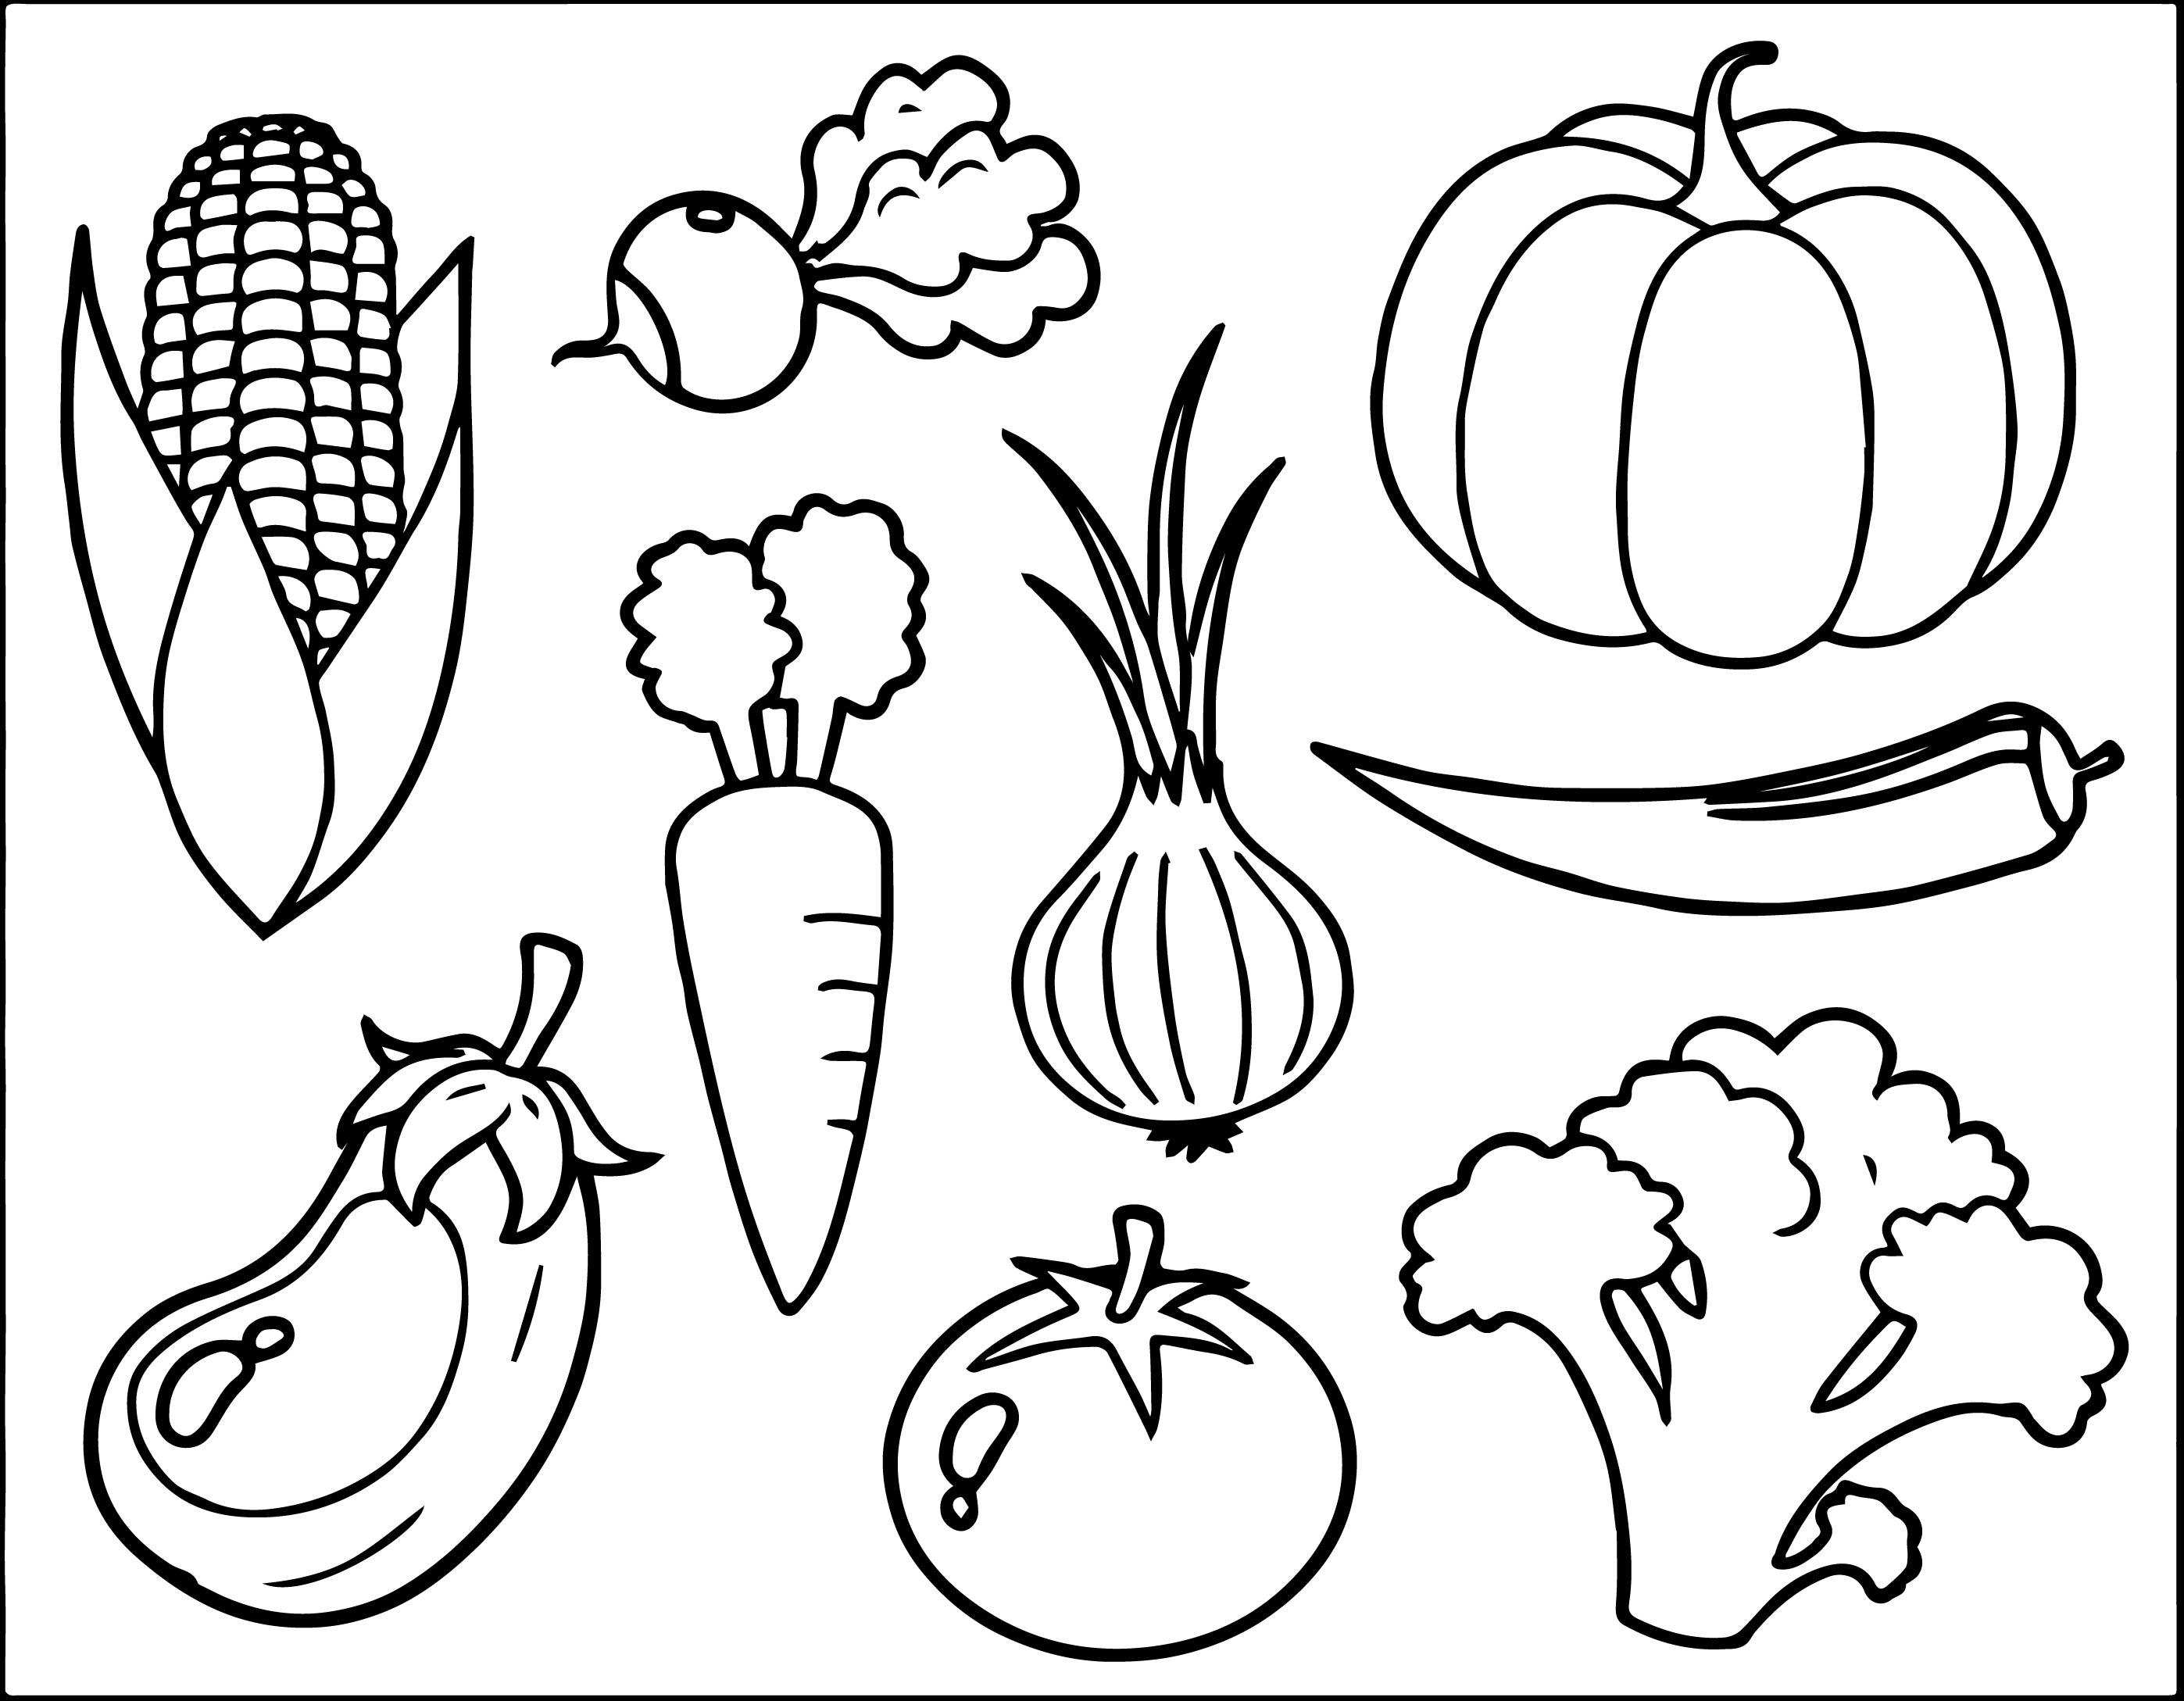 colouring pages of vegetables vegetable coloring pages best coloring pages for kids pages of vegetables colouring